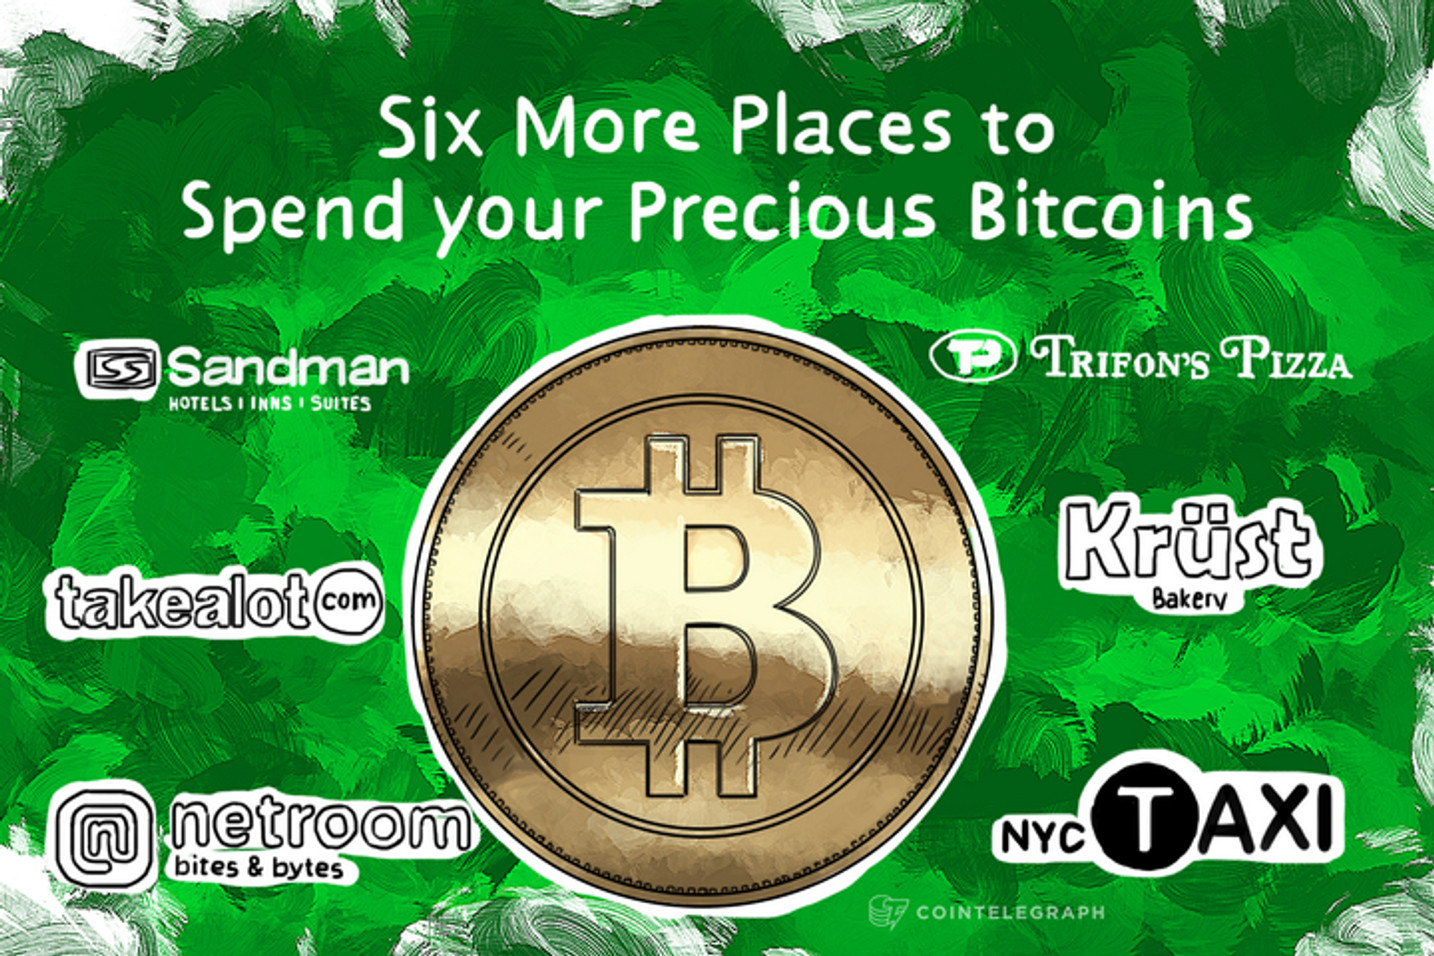 Six More Places to Spend your Precious Bitcoins